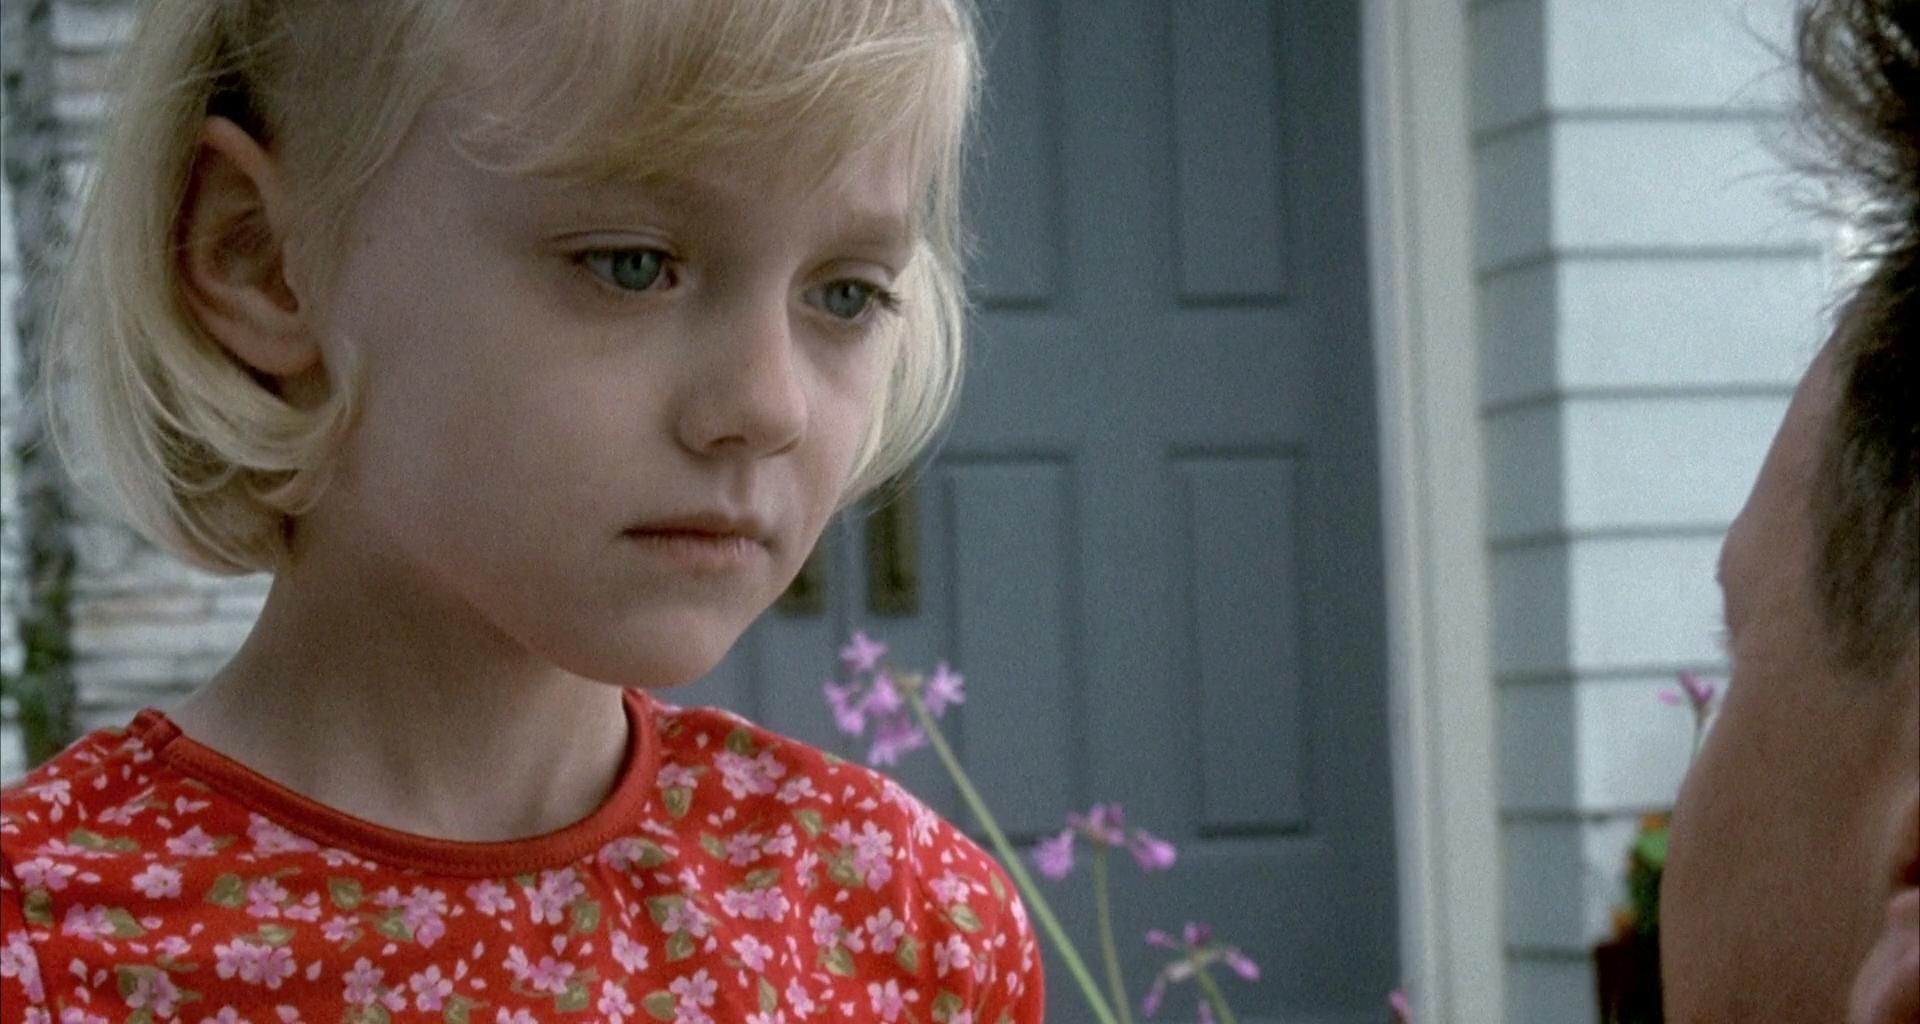 Dakota fanning young